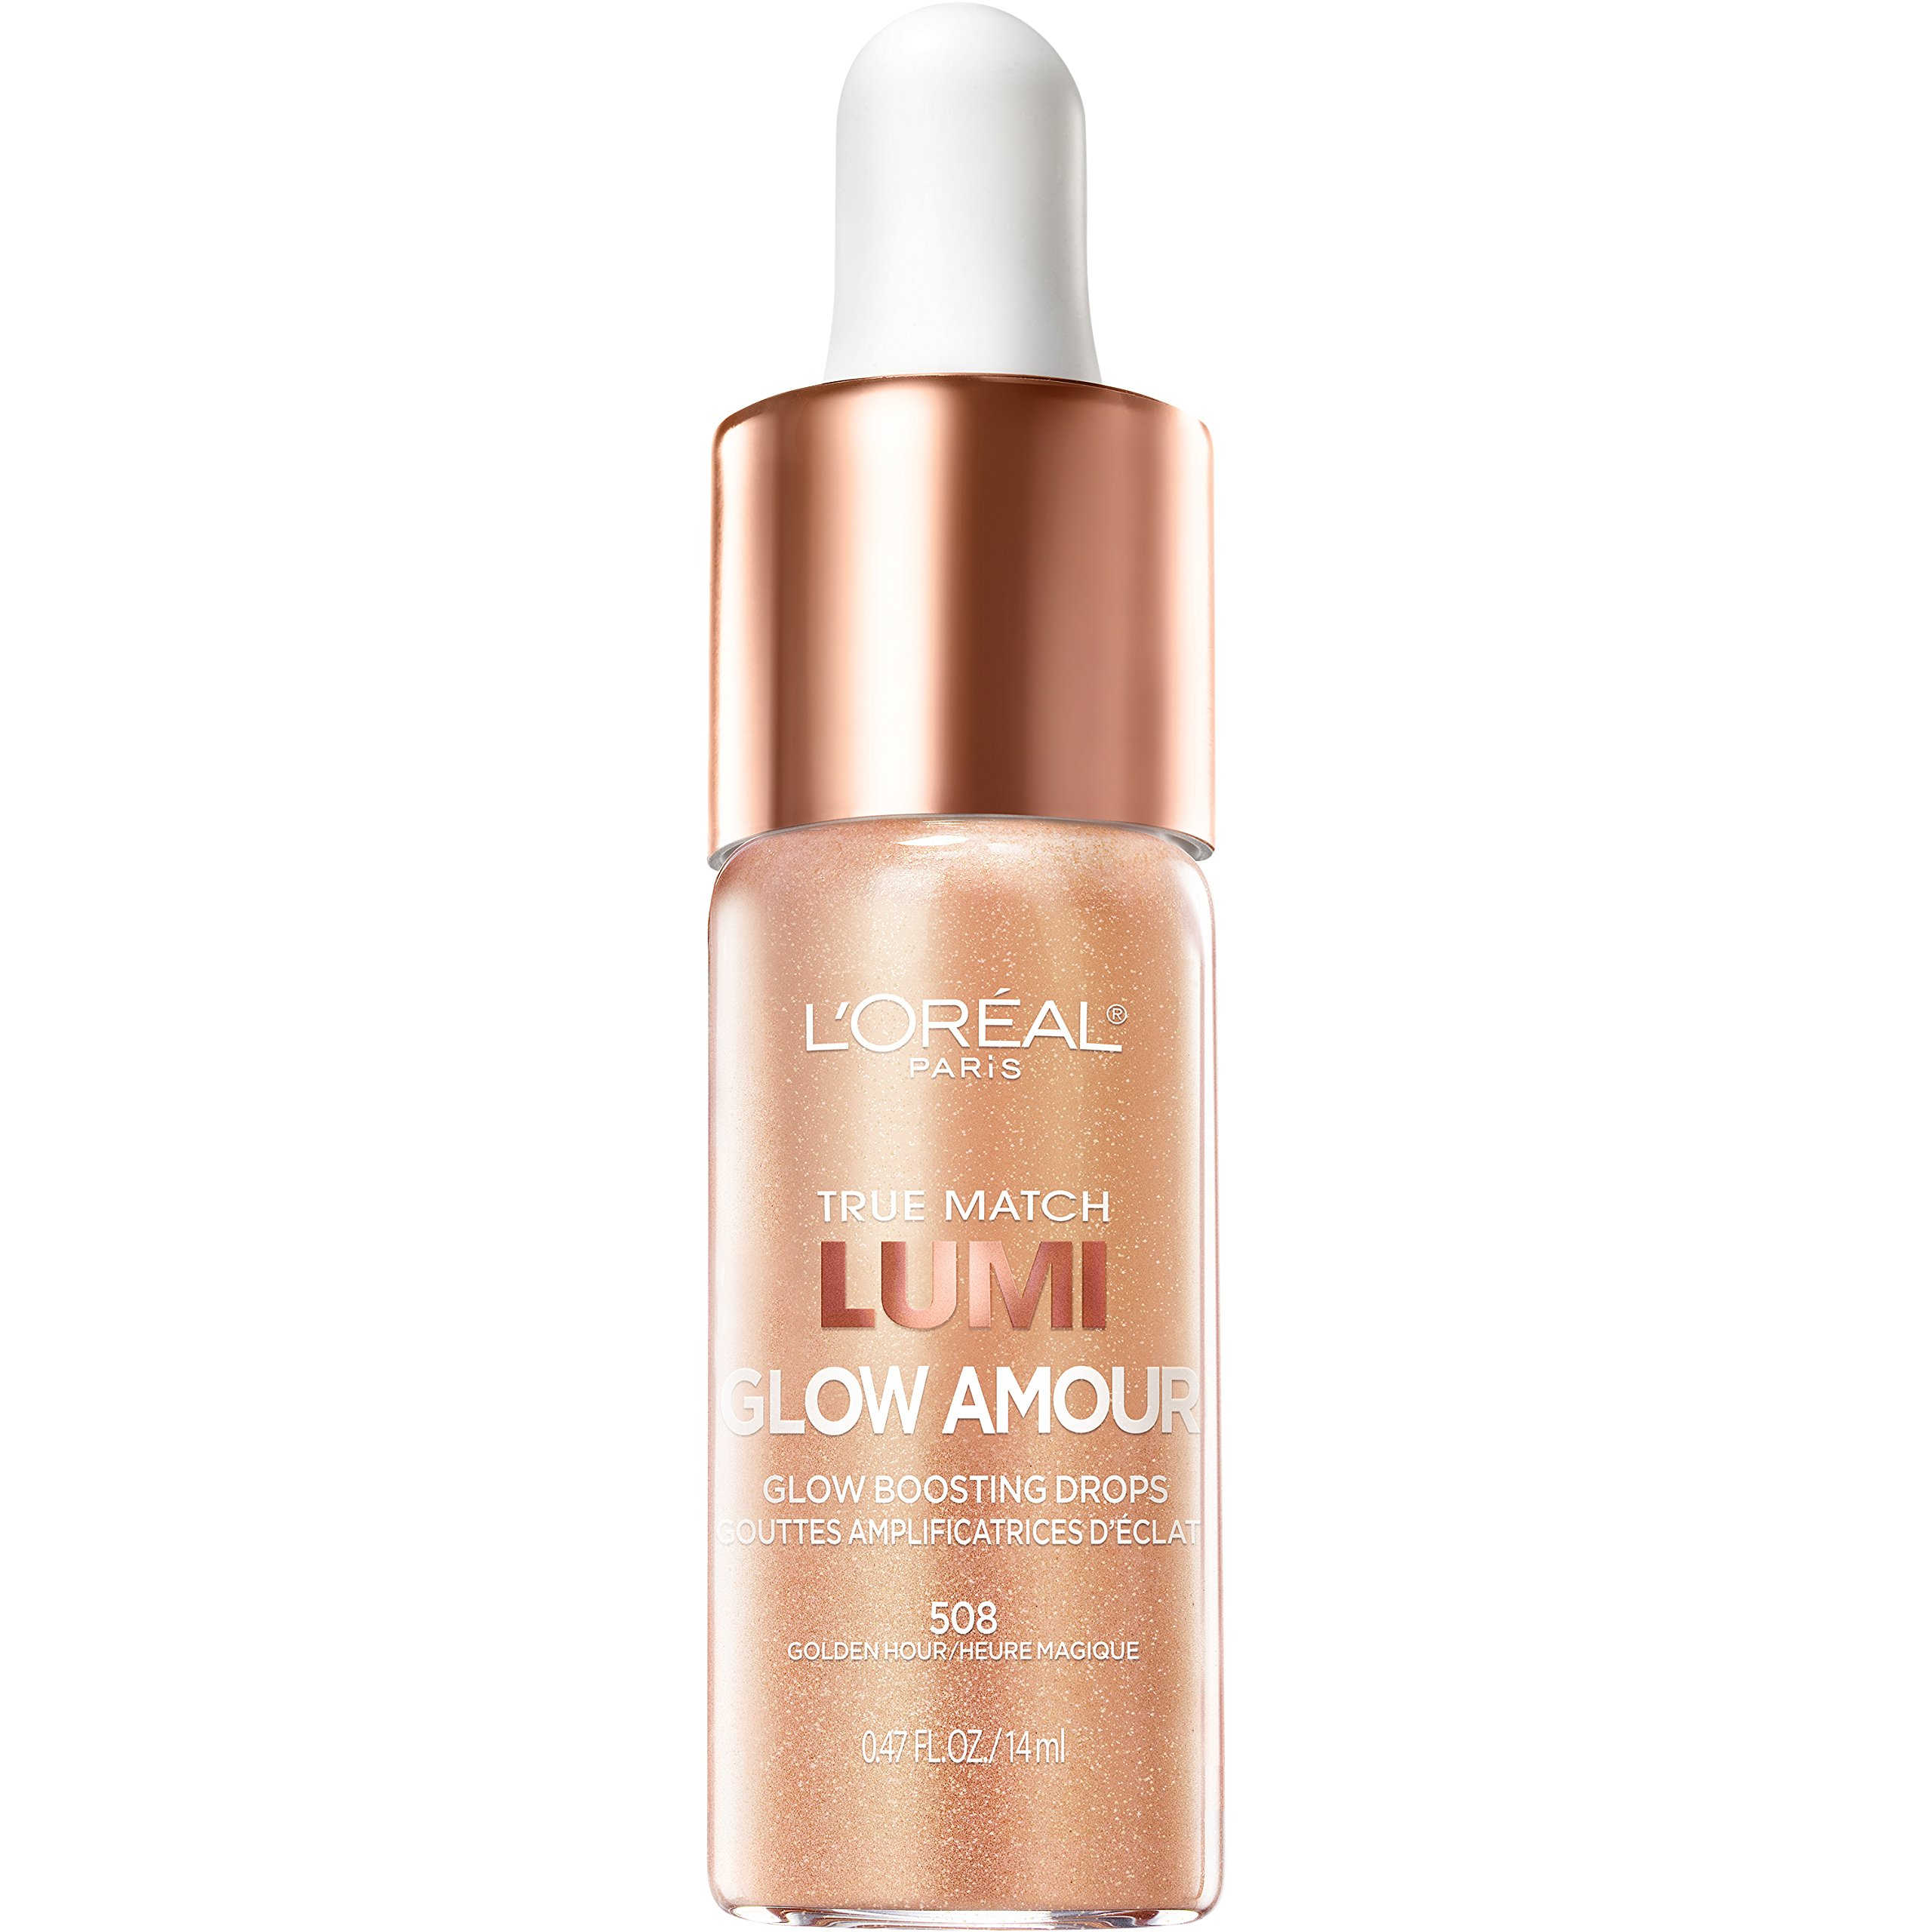 L'Oreal Paris Cosmetics True Match Lumi Glow Amour Boosting Drops, Golden Hour, 0.47 Fluid Ounce